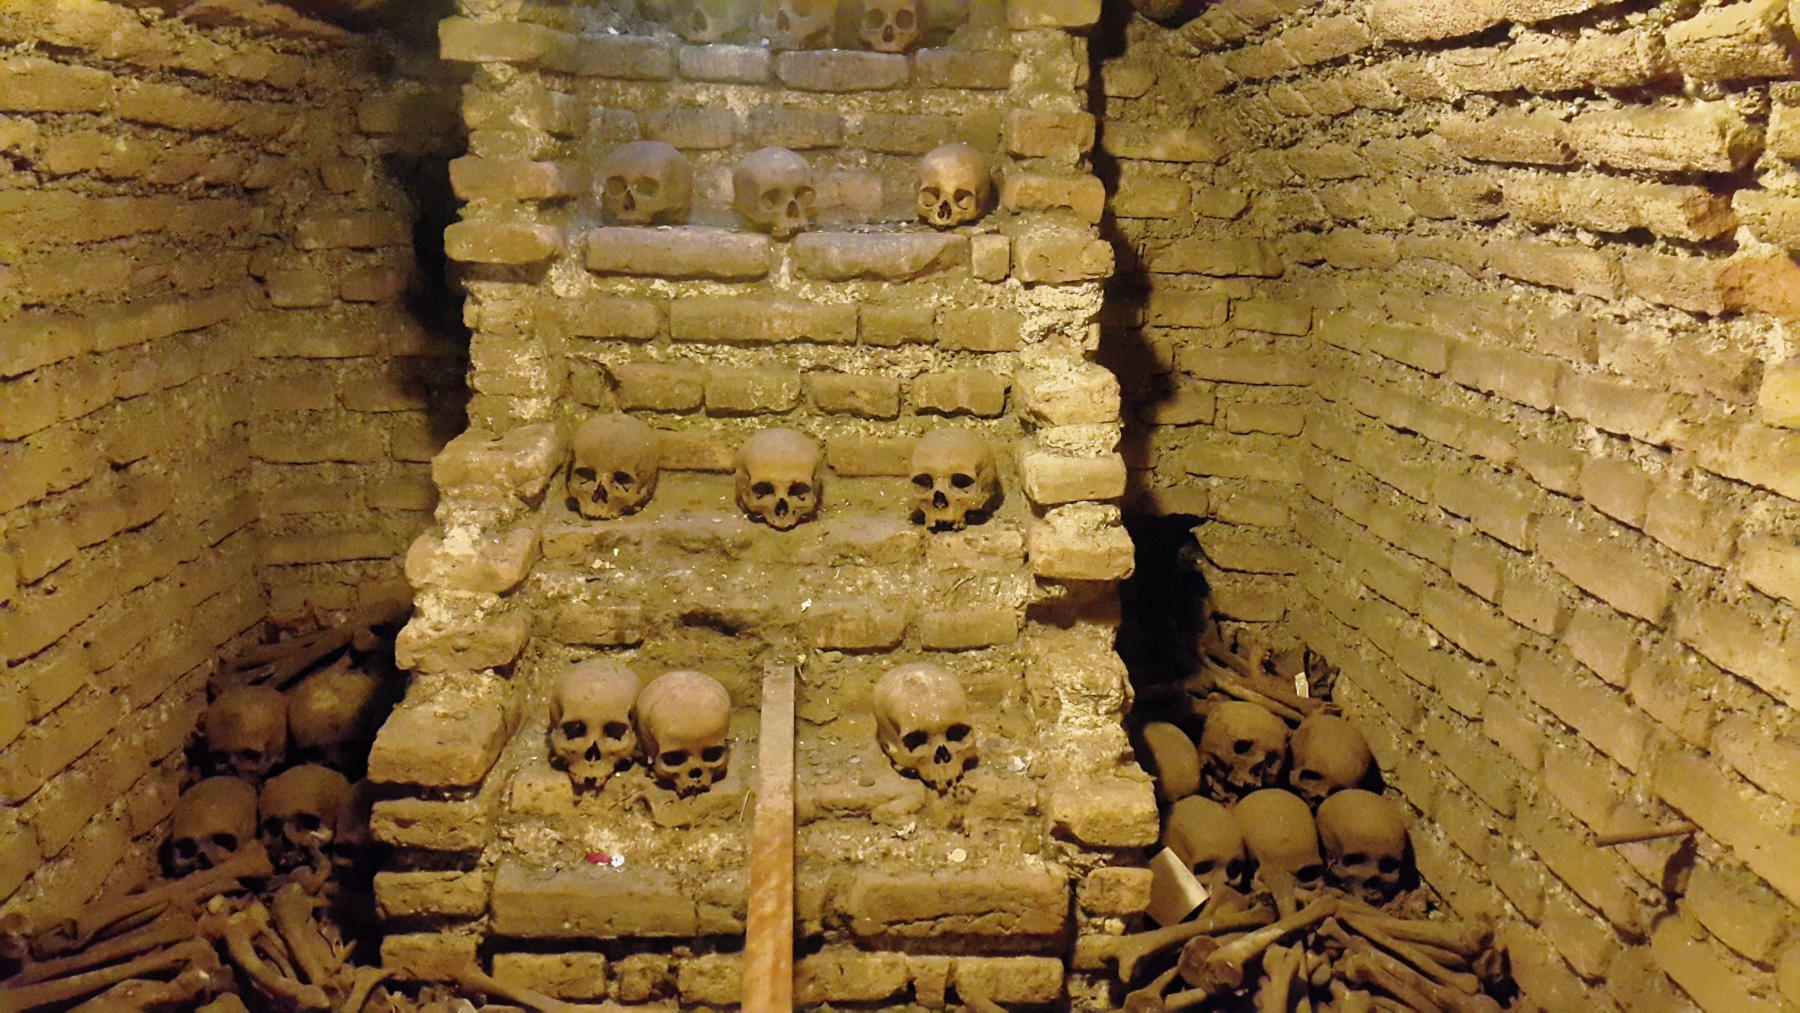 Macabre scenes in the catacombs